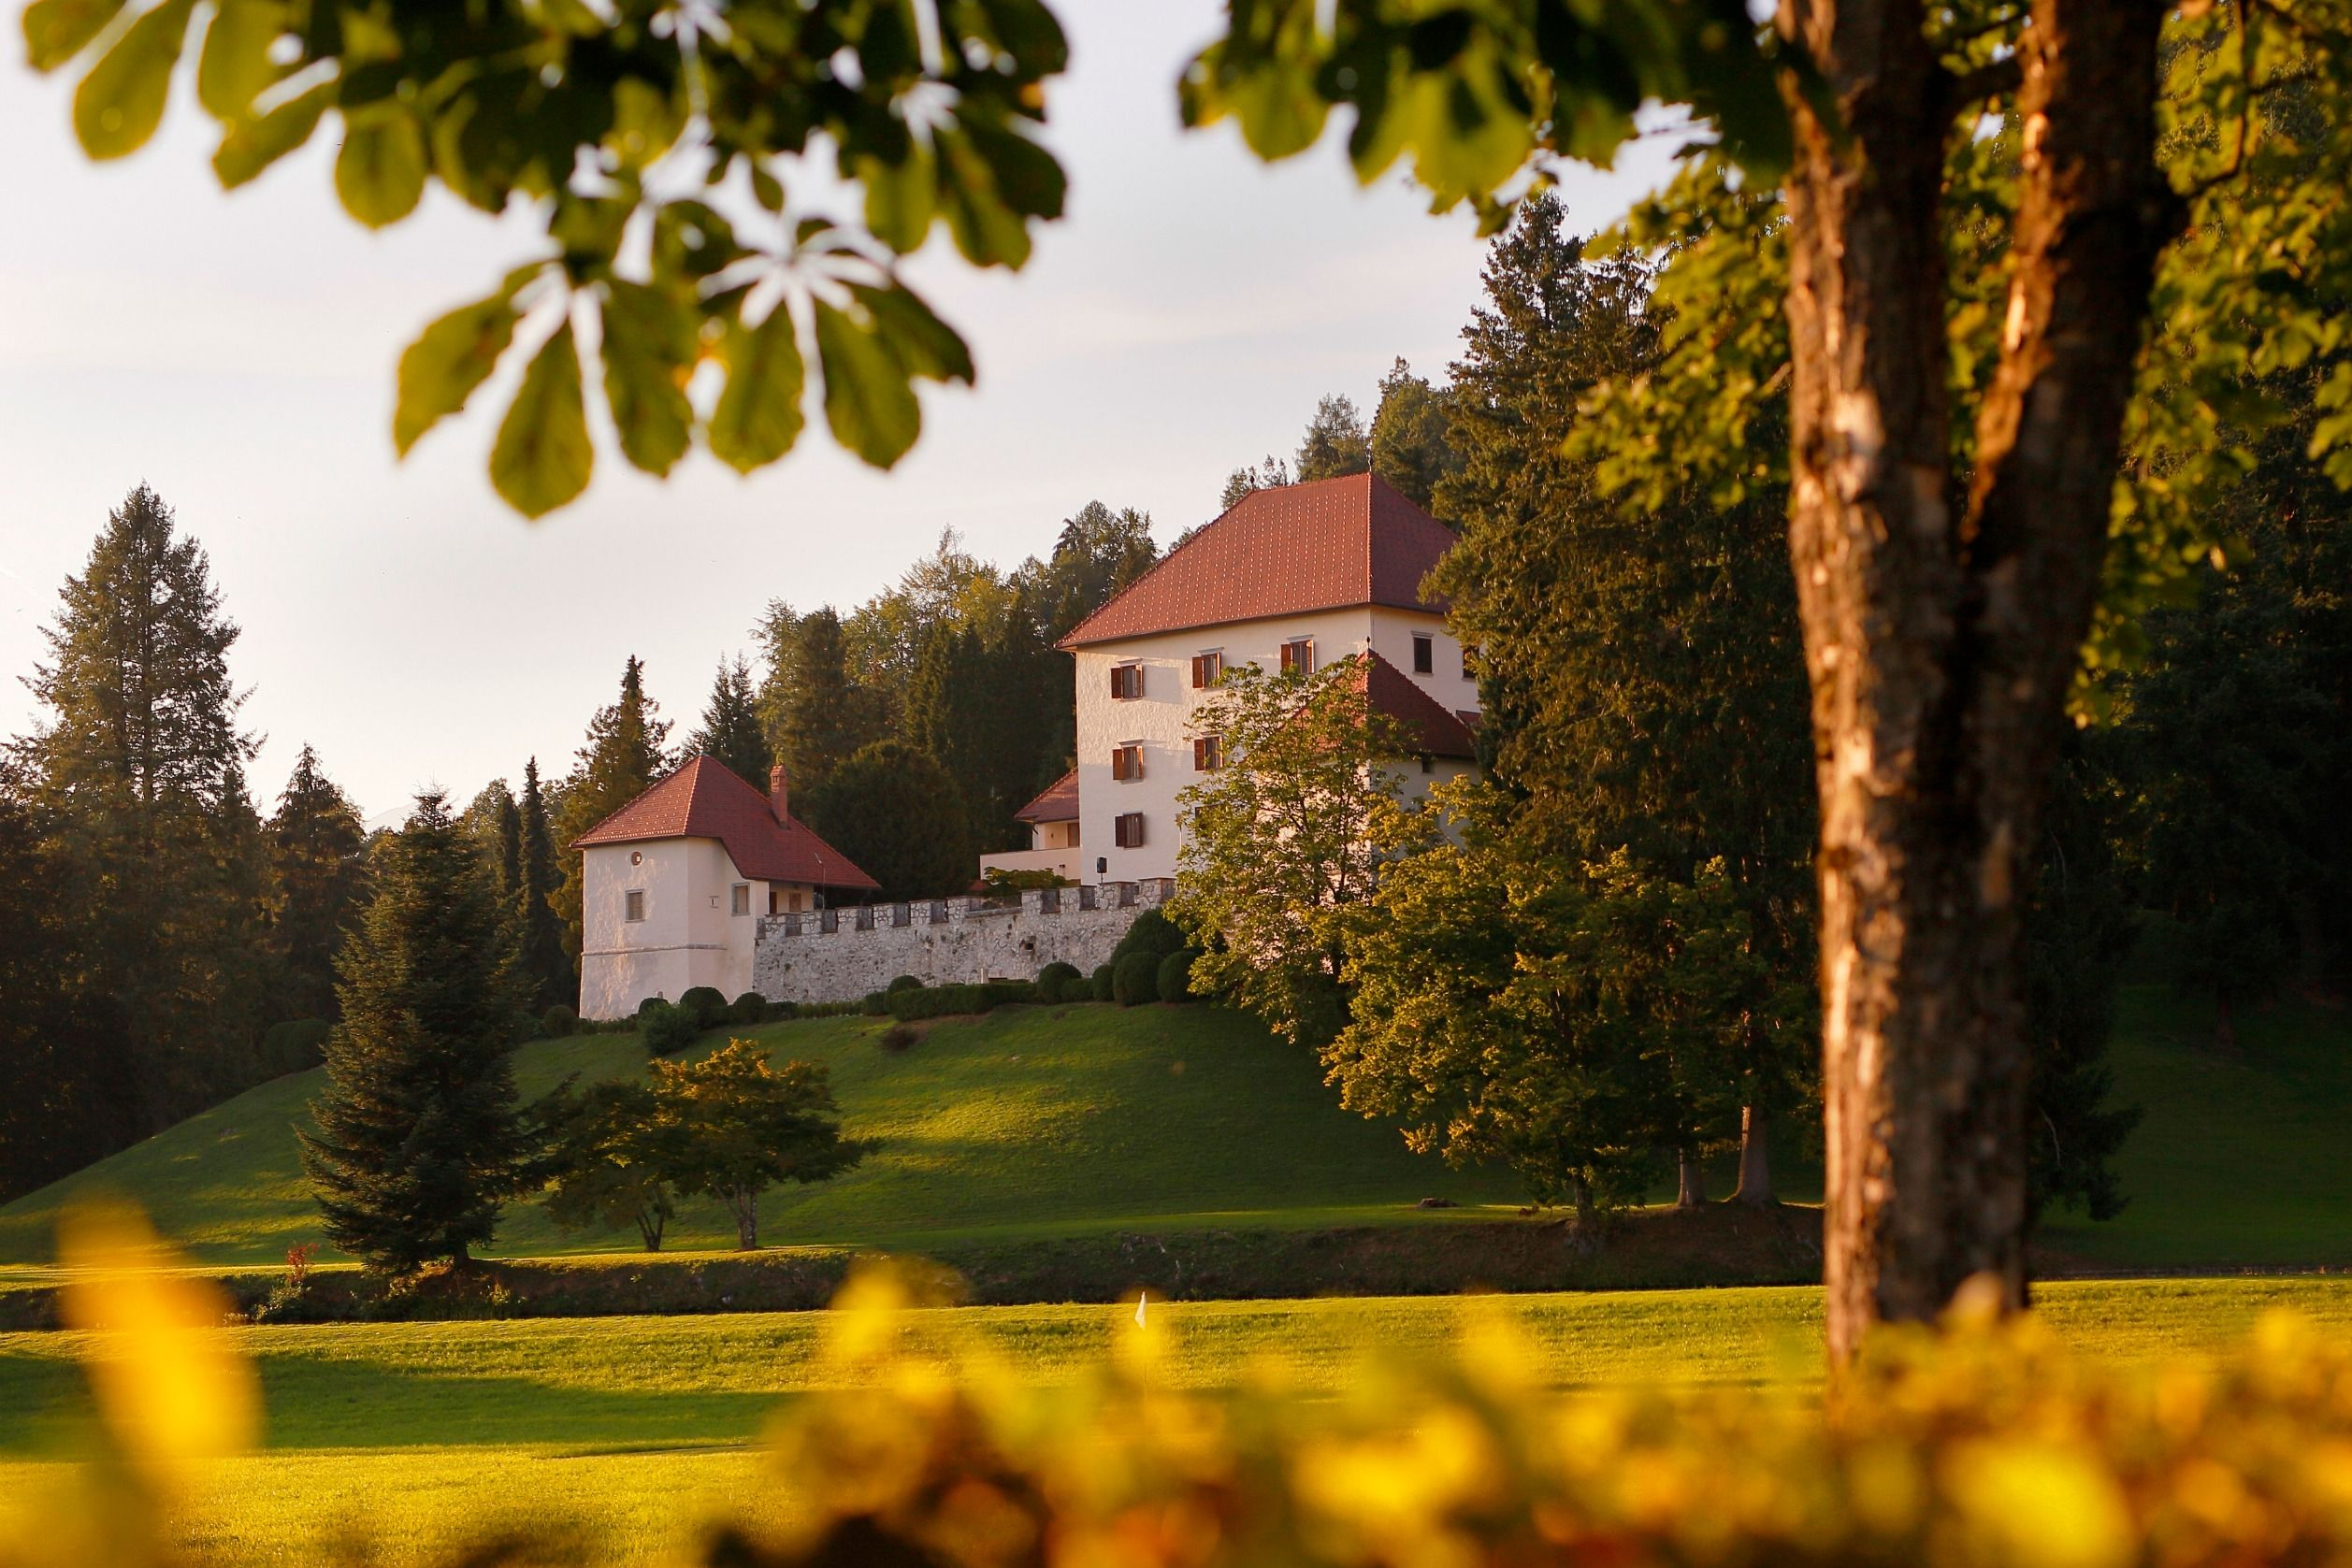 the original ambience of one of the oldest and the best preserved slovenian castles and relaxing atmosphere in the heart of the nature will amaze you